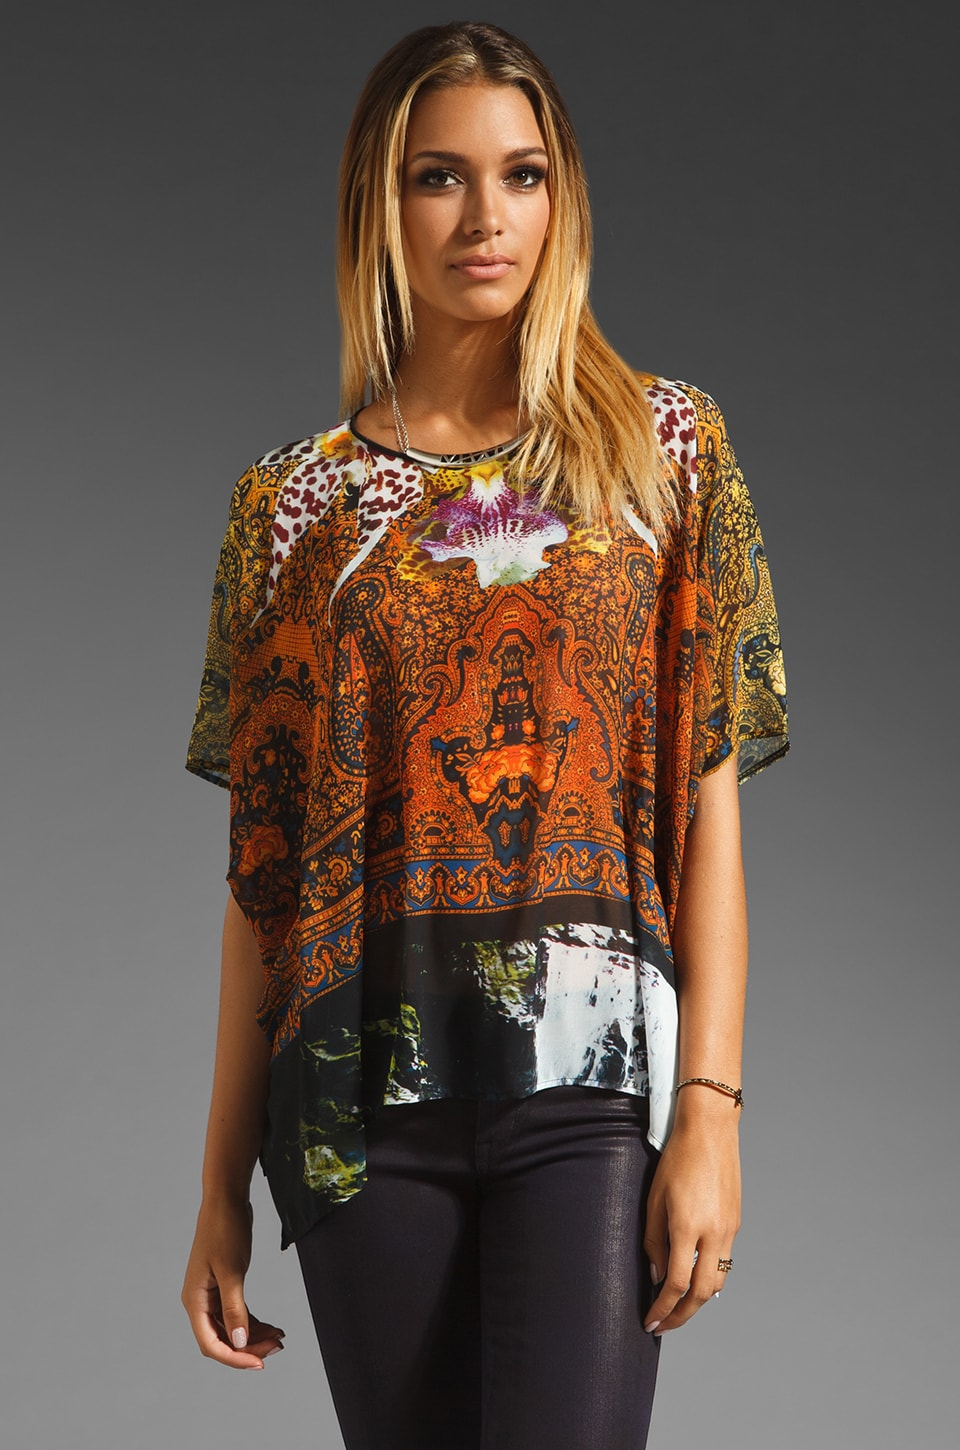 Clover Canyon Ombre Paisley Top in Multi